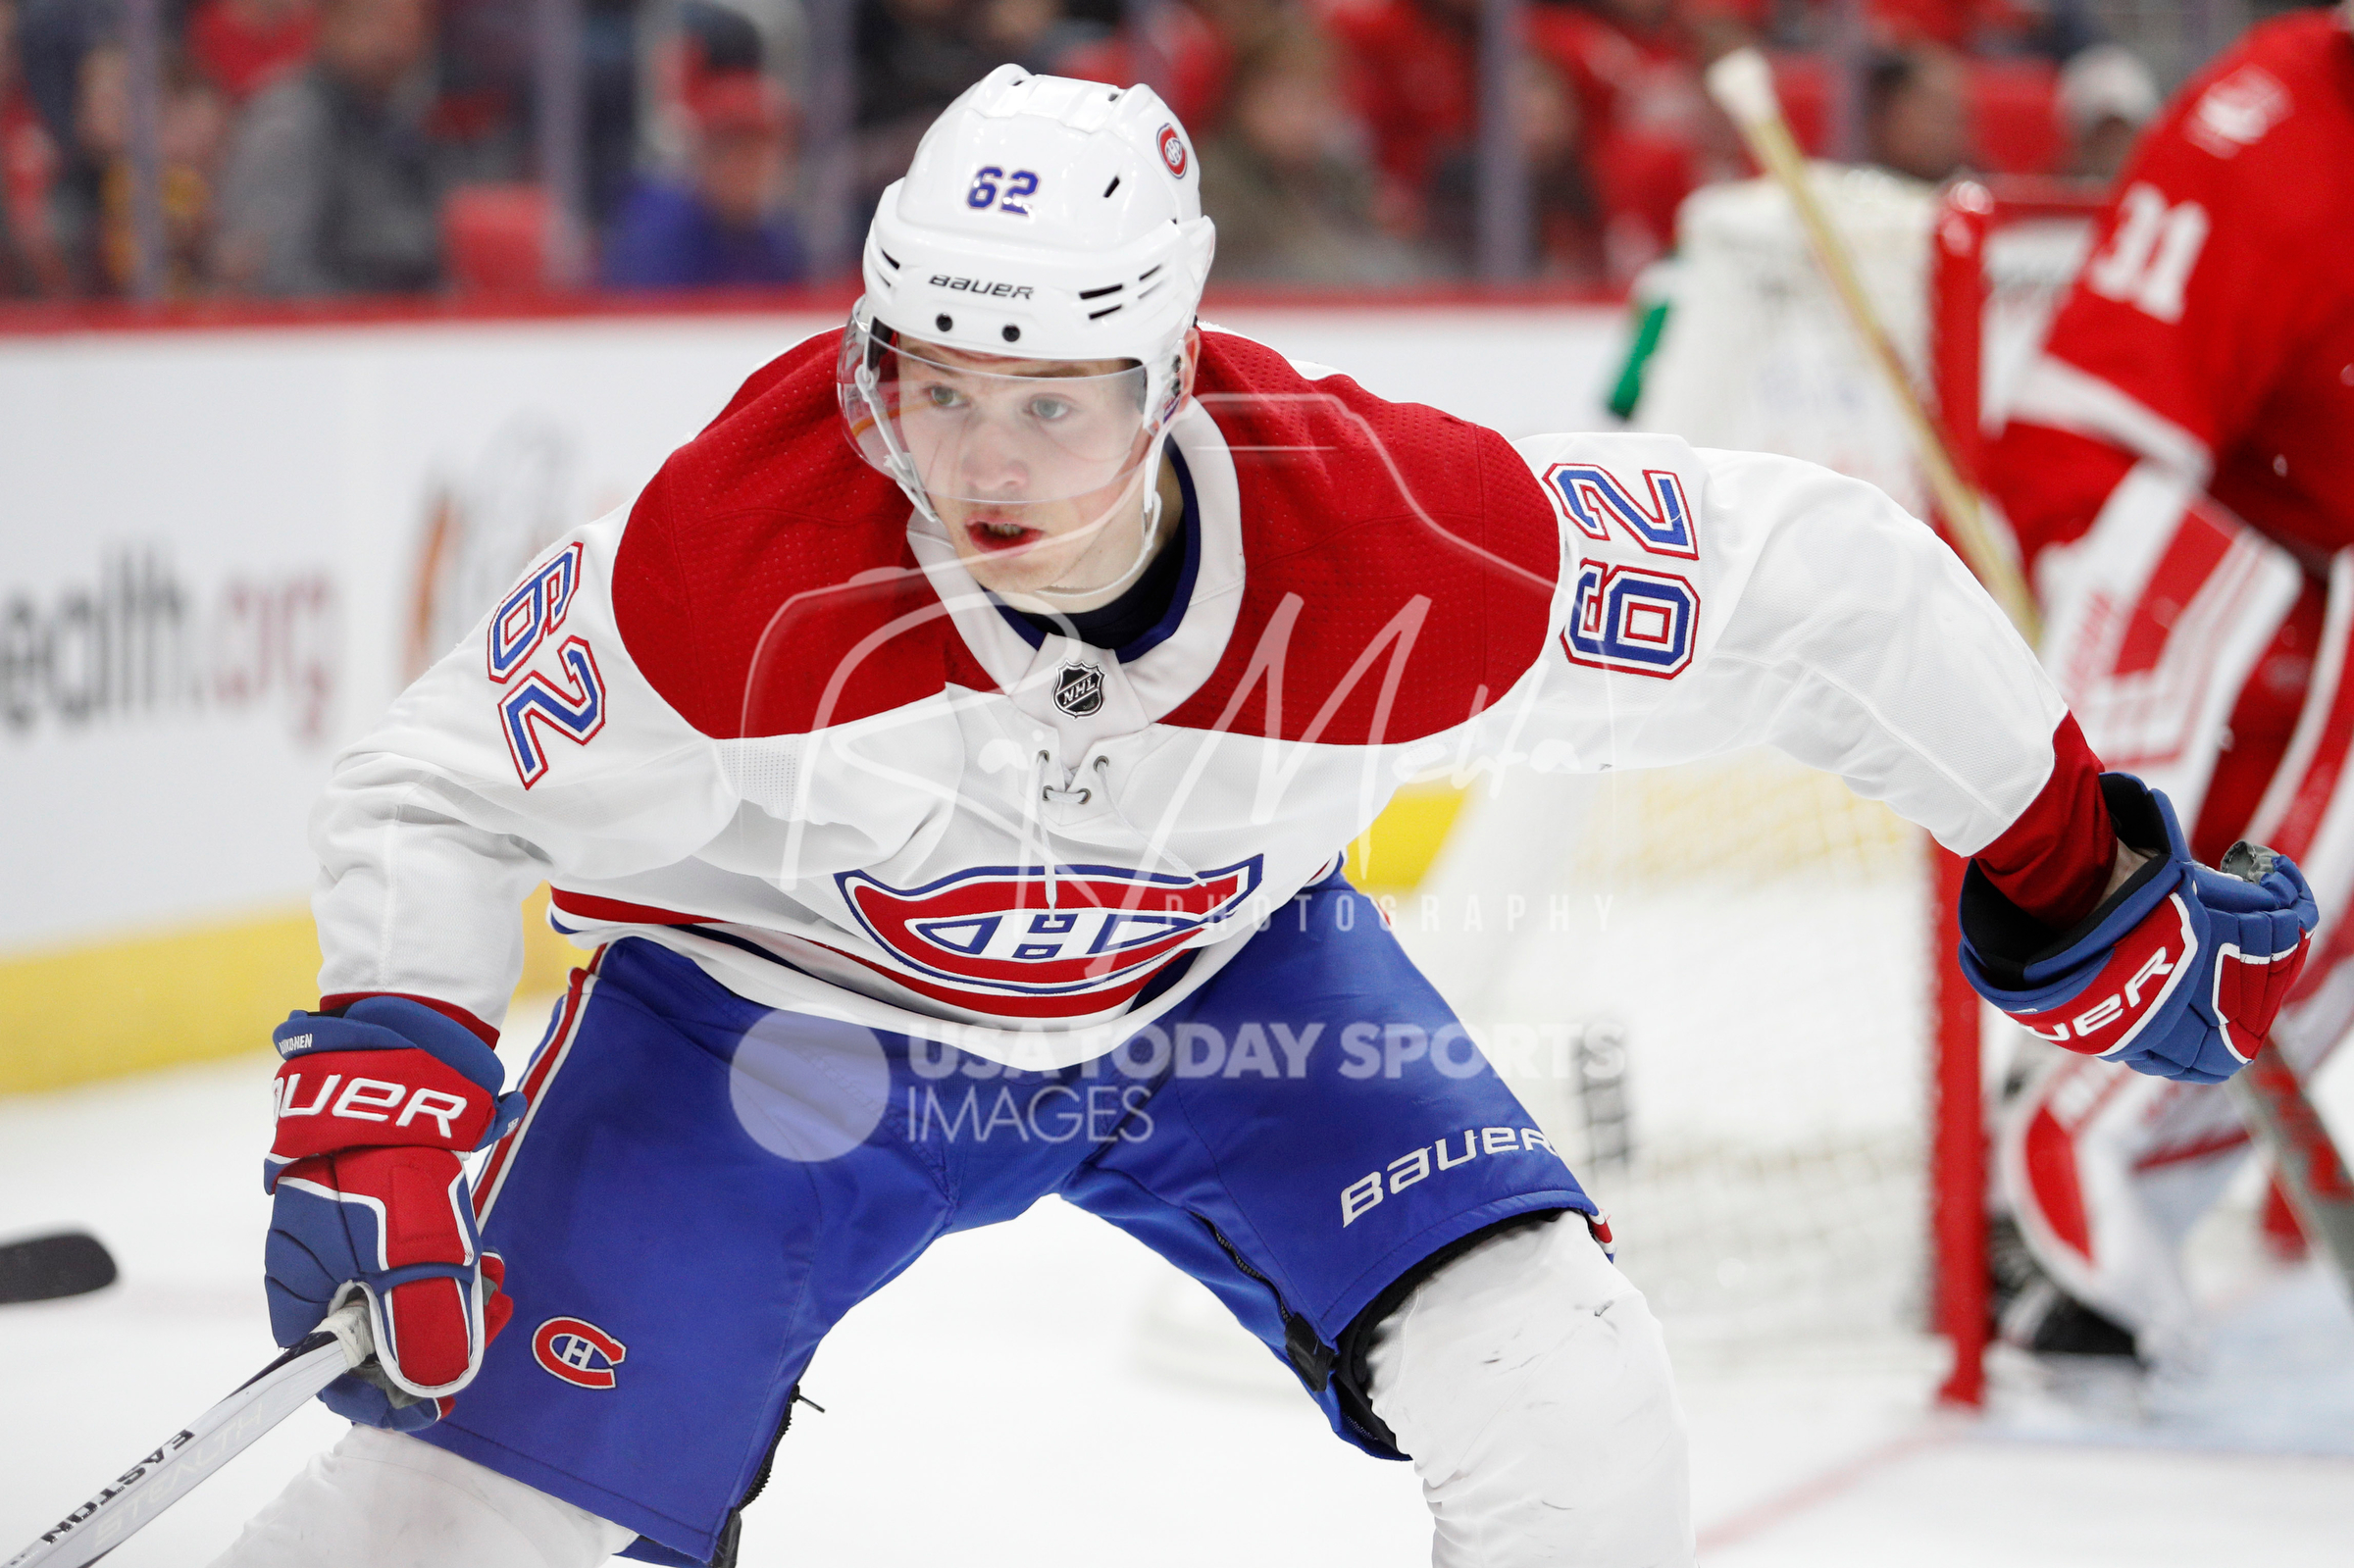 Apr 5, 2018; Detroit, MI, USA; Montreal Canadiens left wing Artturi Lehkonen (62) looks at the puck during the third period against the Detroit Red Wings at Little Caesars Arena. Mandatory Credit: Raj Mehta-USA TODAY Sports